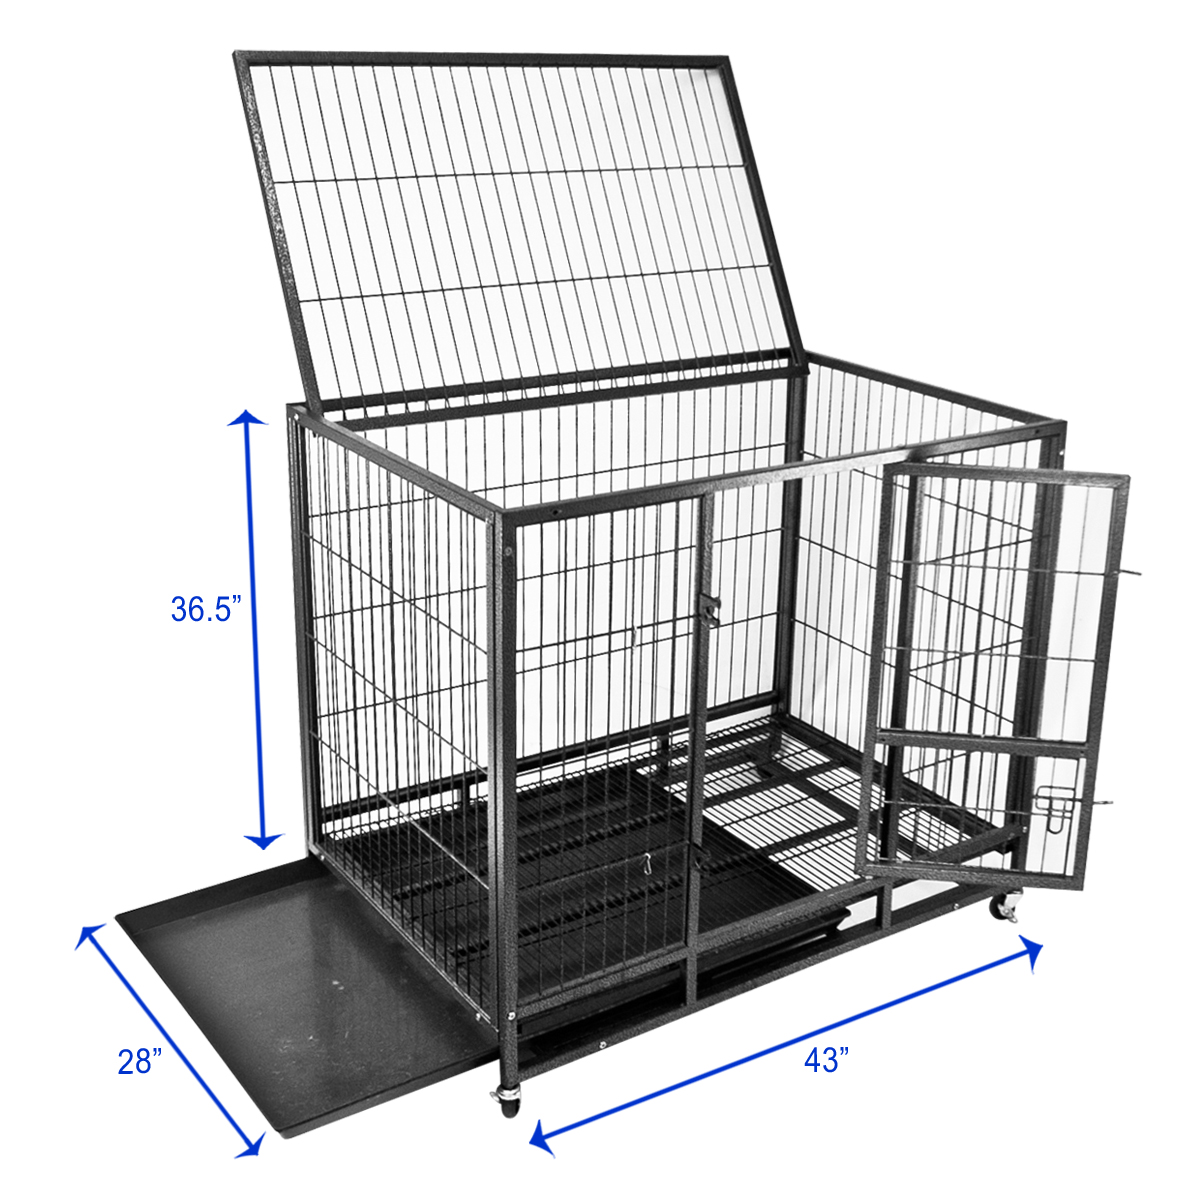 Portable Dog Kennels : Quot dog kennel w wheels portable pet puppy carrier crate